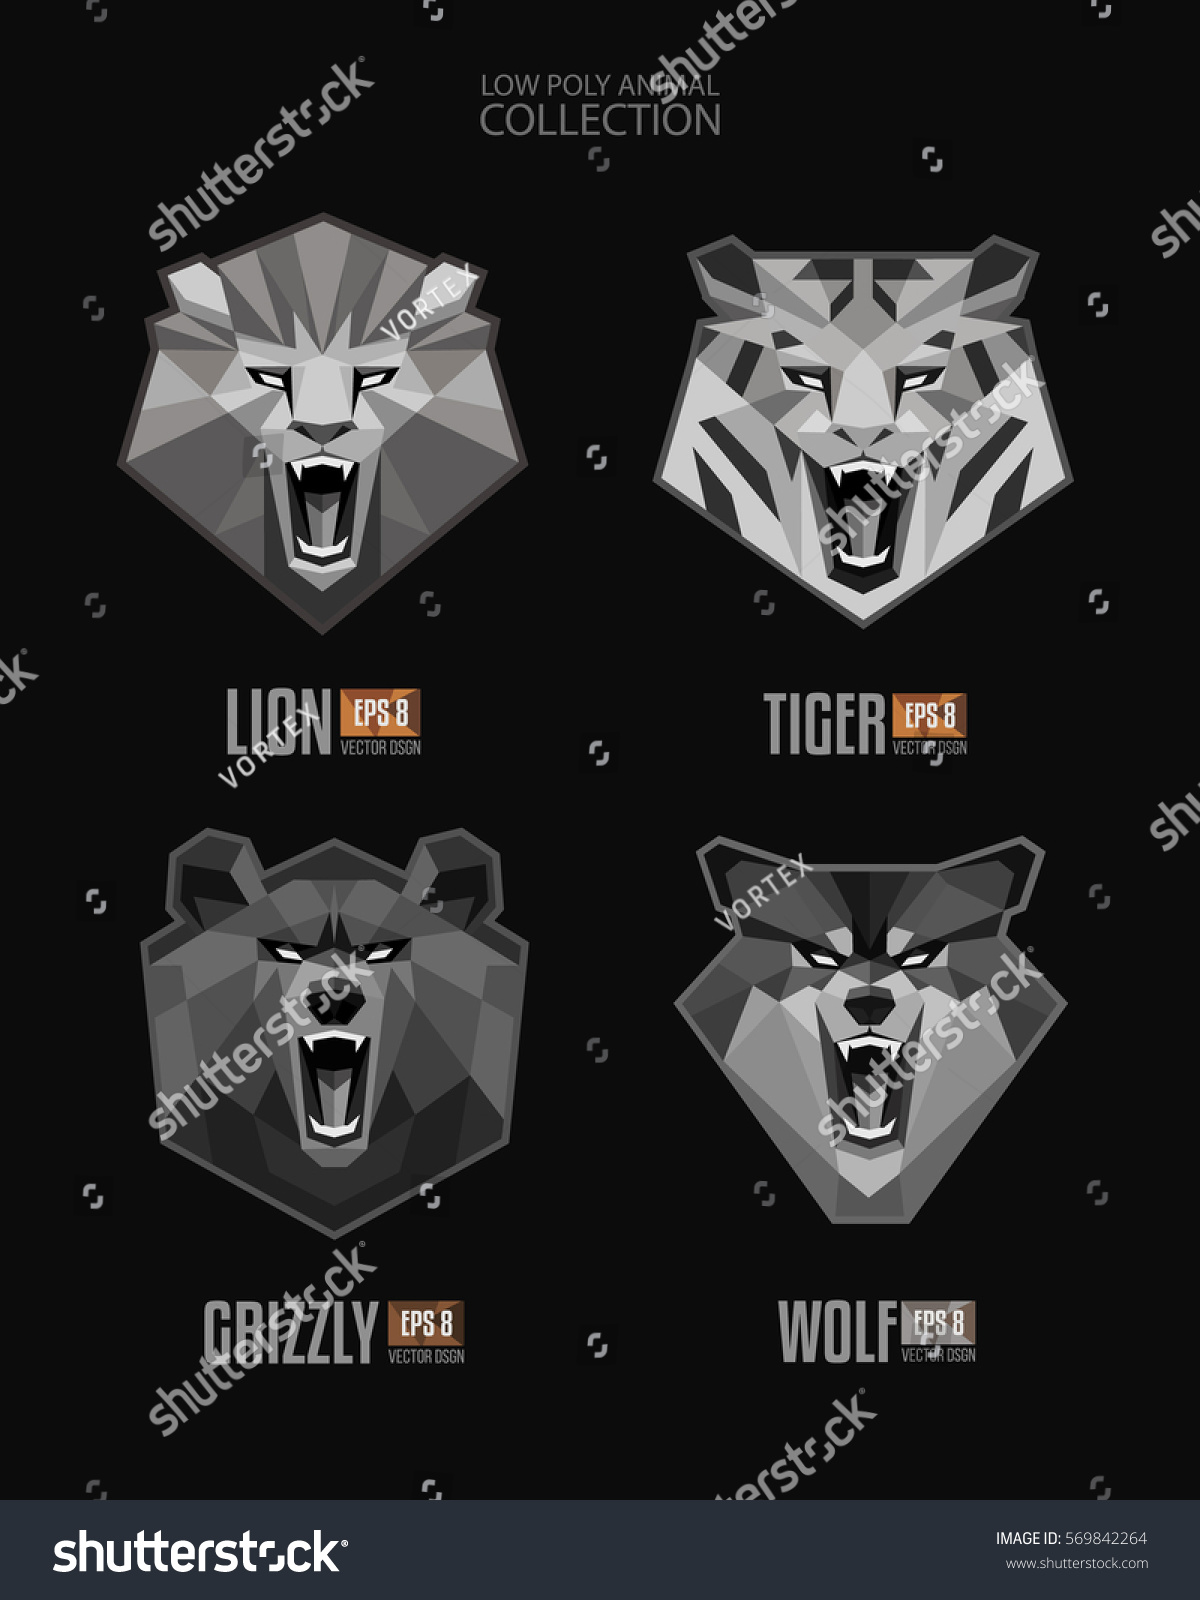 Tiger head triangular icon geometric trendy stock vector image - Vector Set Of Monochrome Trendy Low Polygon Angry Animals Roaring Lion Tiger Bear Wolf Mascot Face